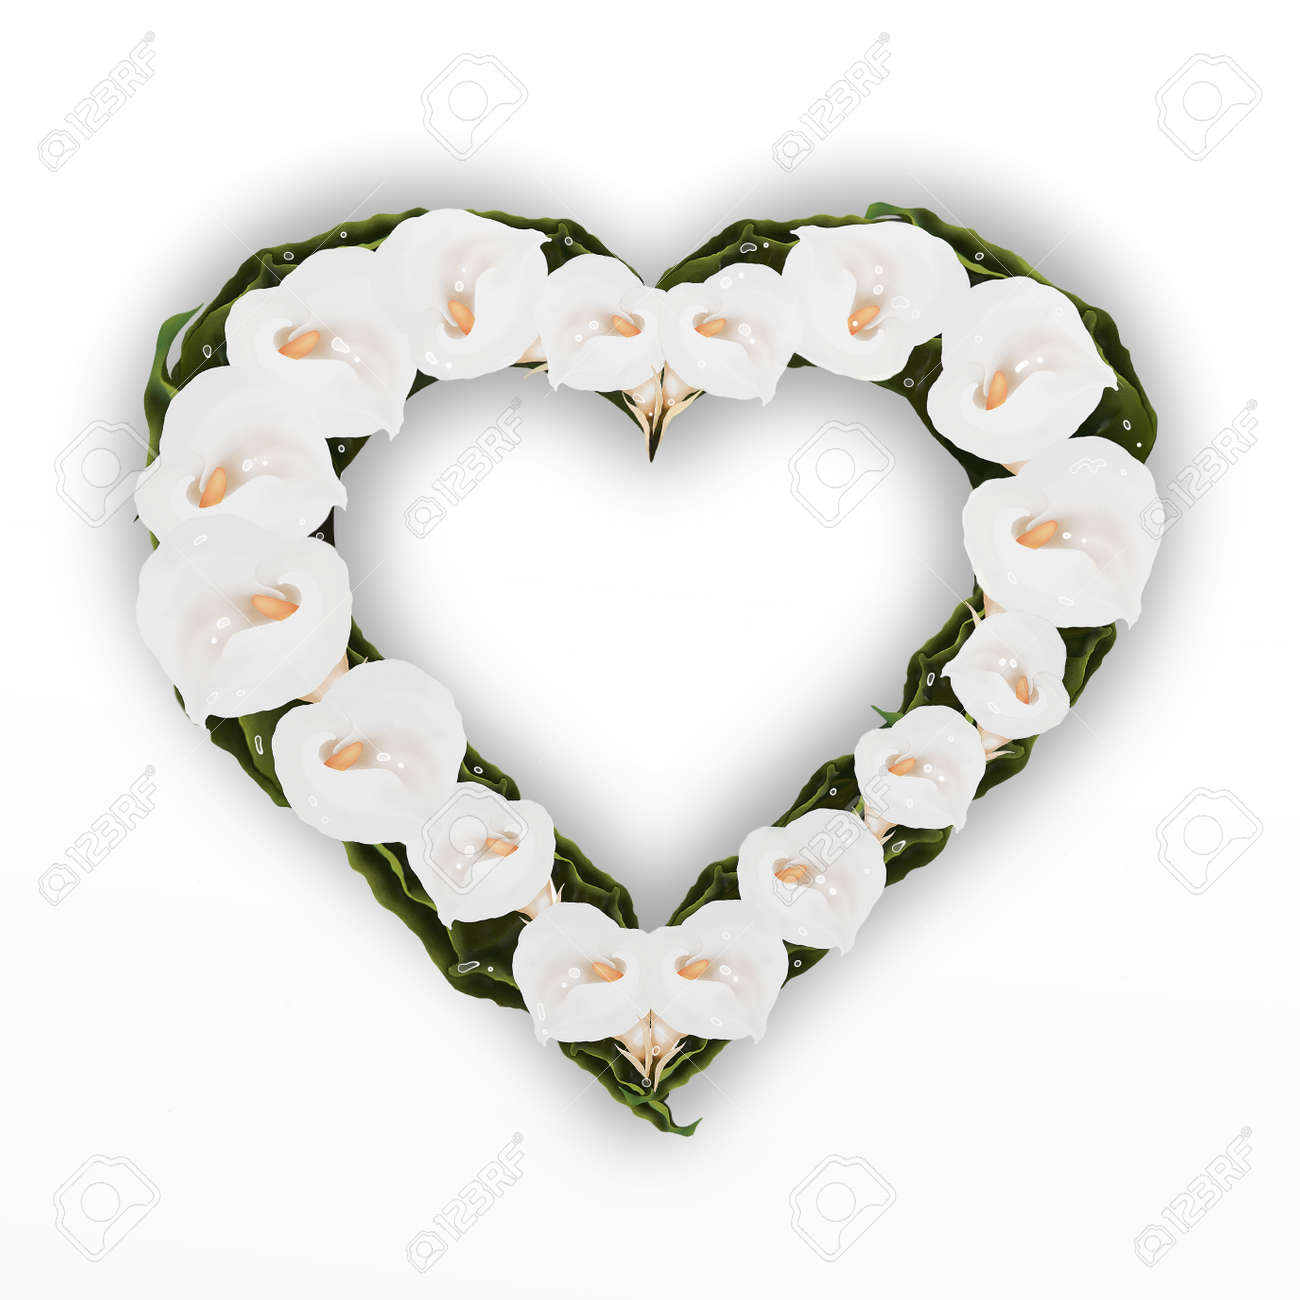 A Beautifully Heart Frame Of White Calla Lily Flower Isolated